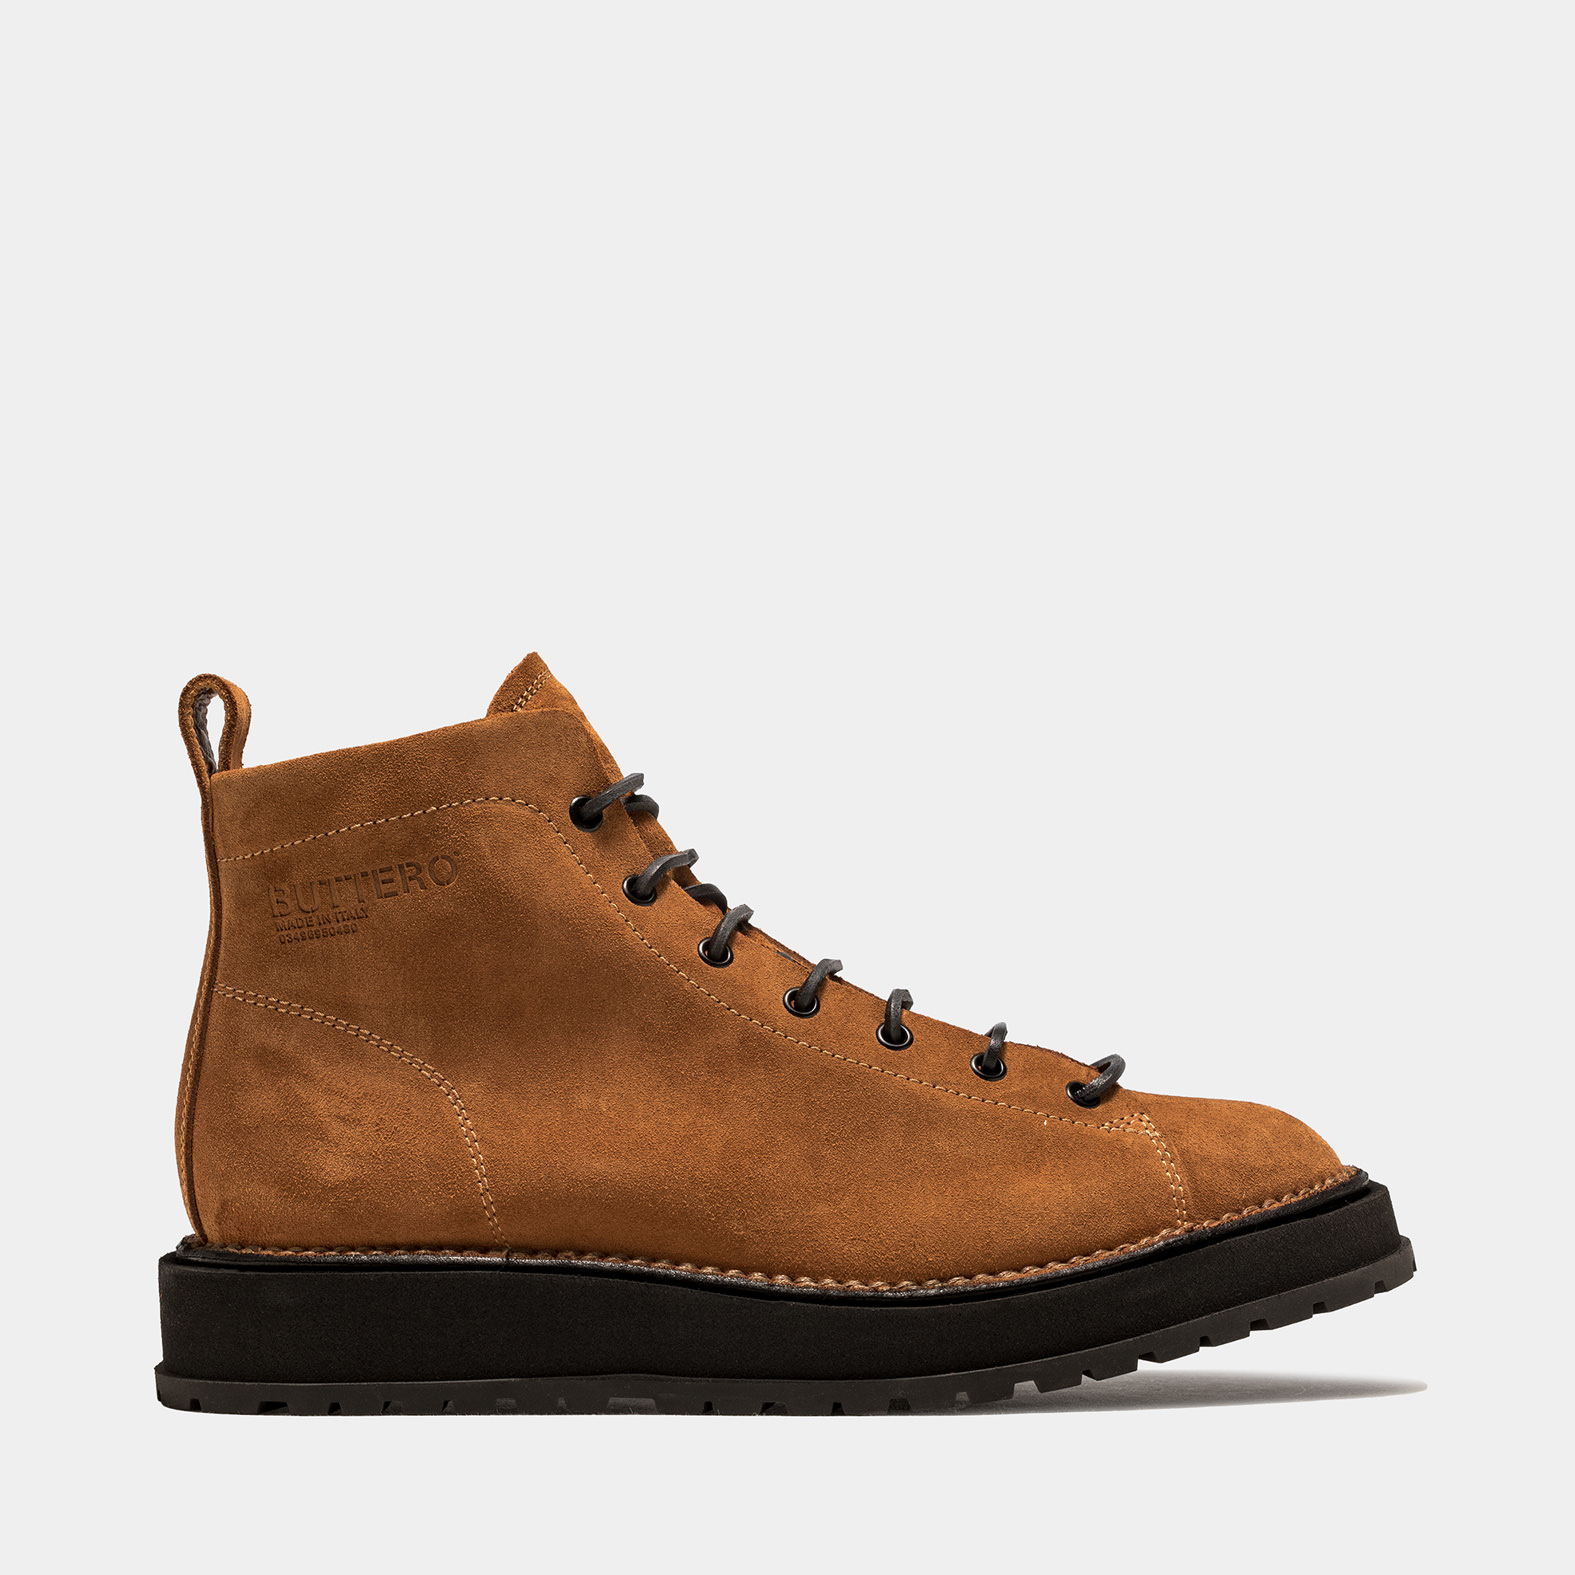 BUTTERO: AEDI LACE-UP BOOTS IN LIGHT BROWN SUEDE